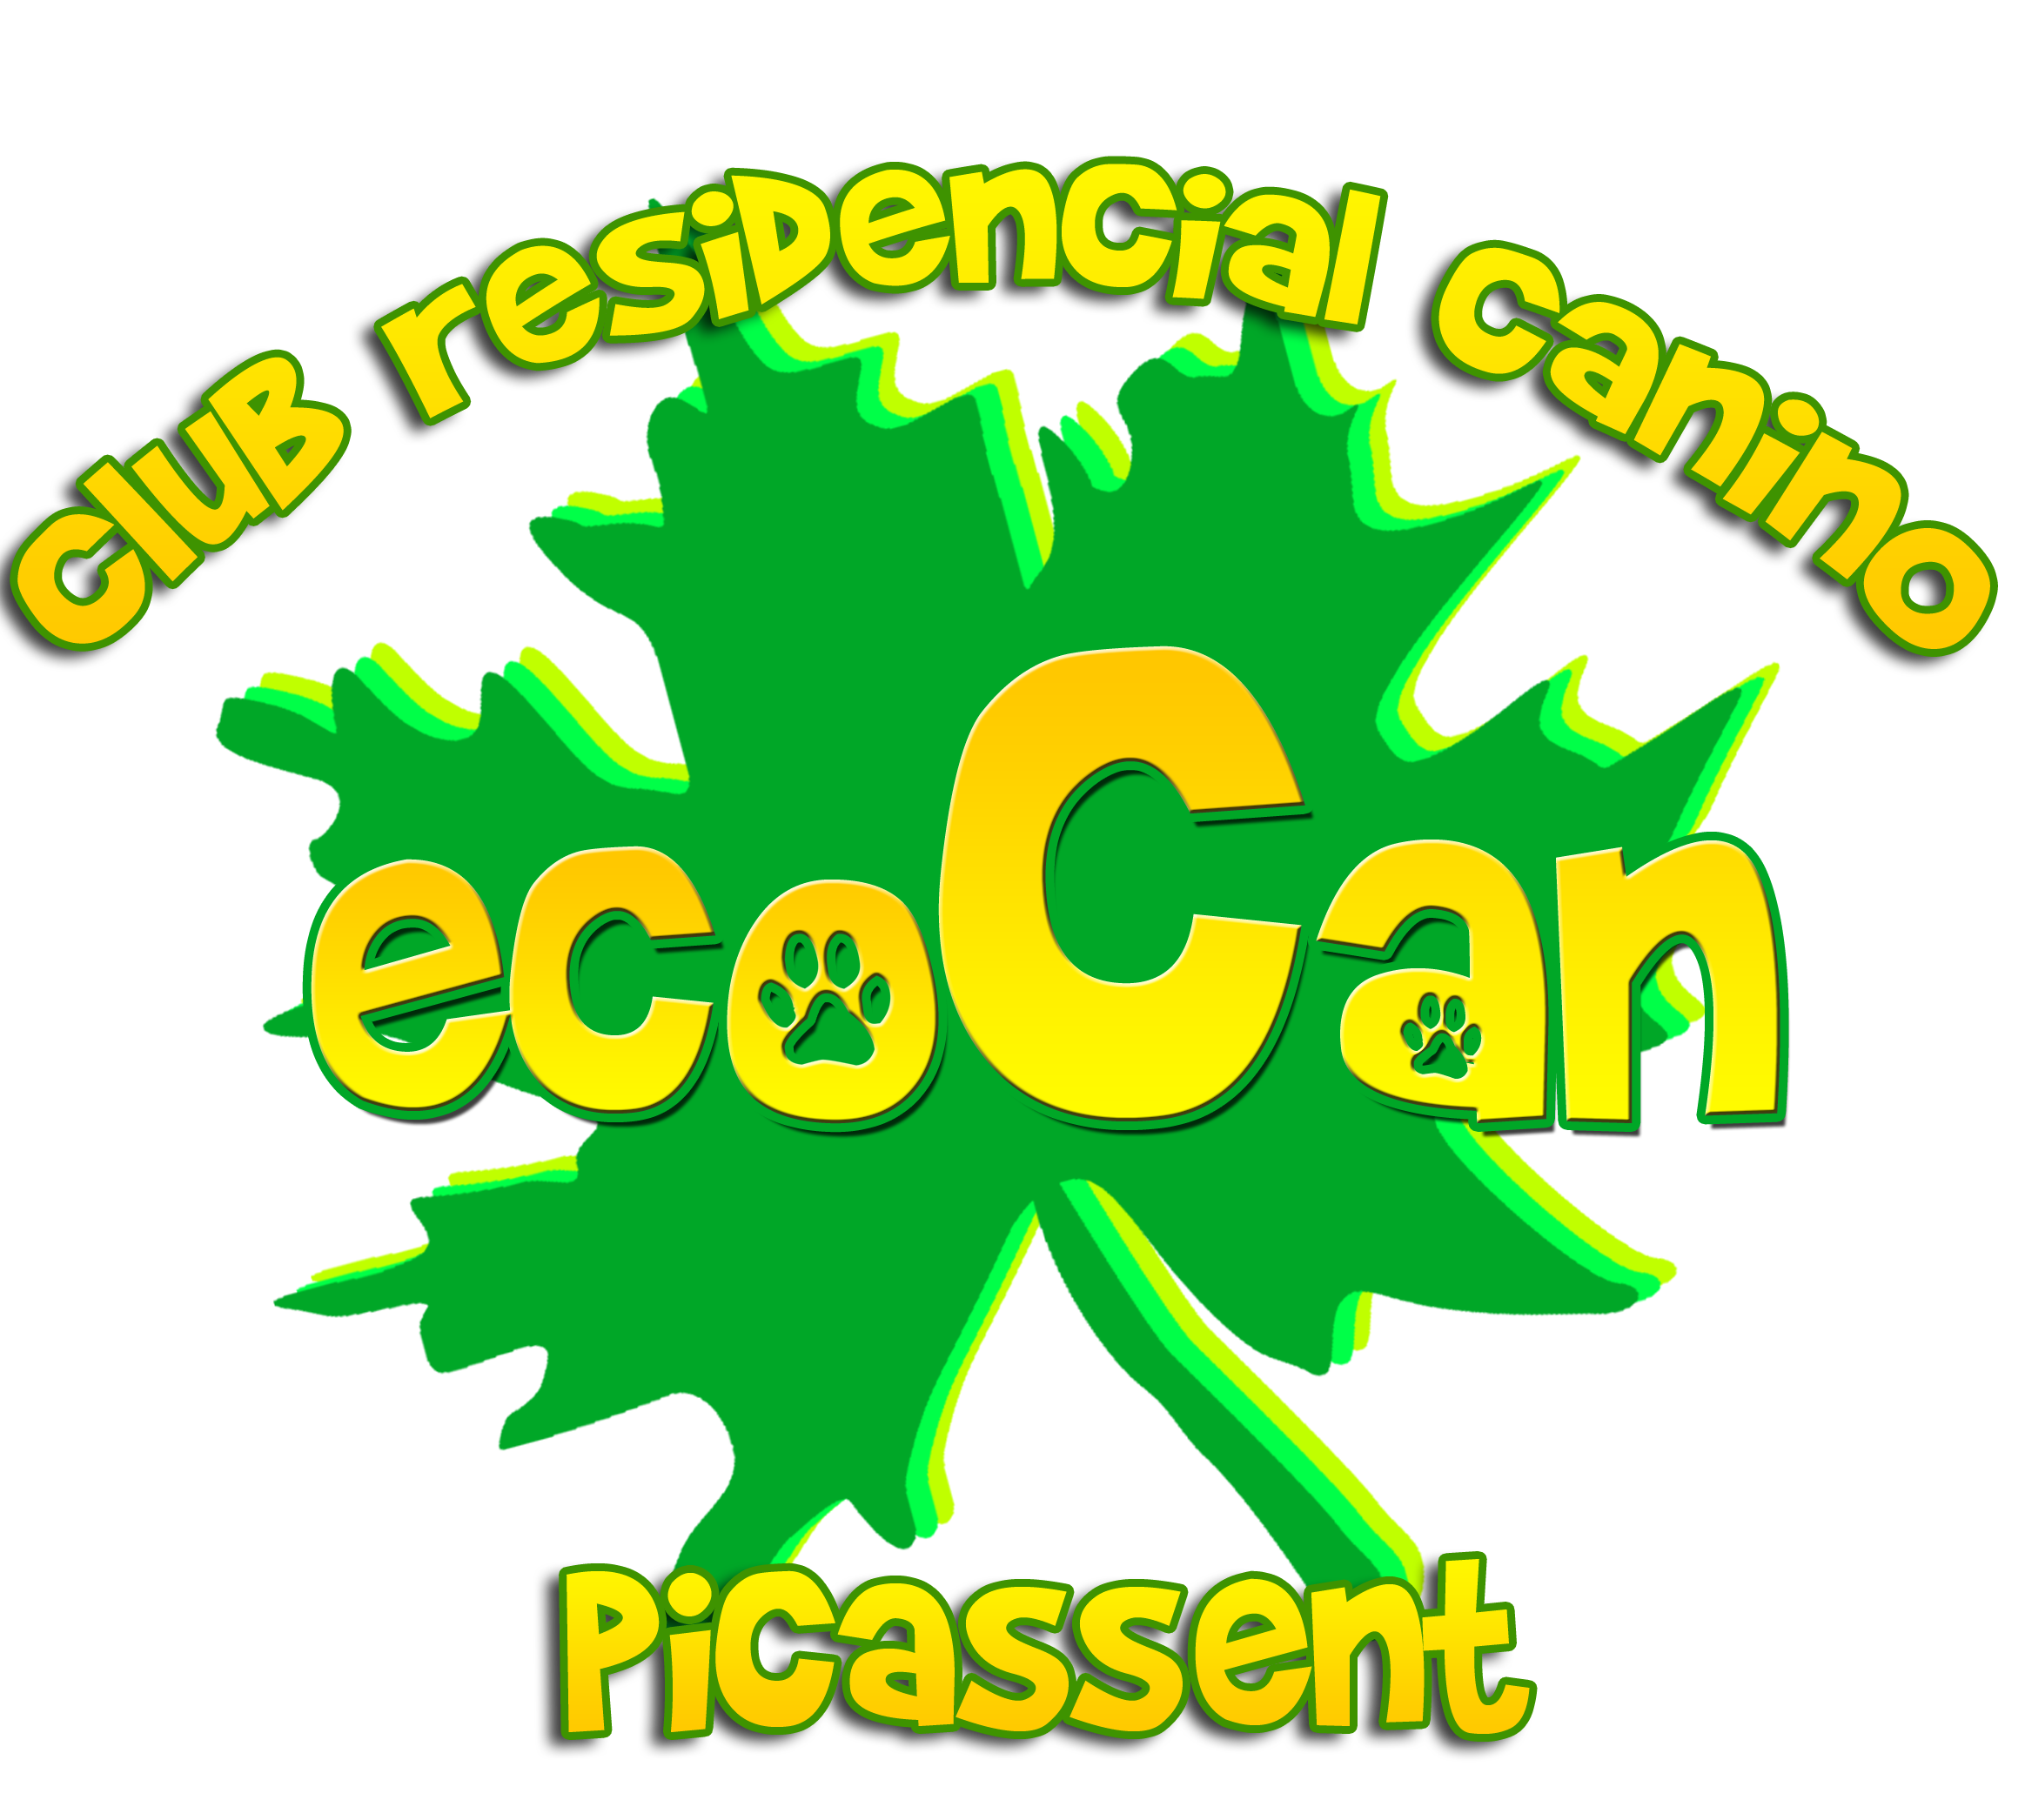 club residencial canino picassent